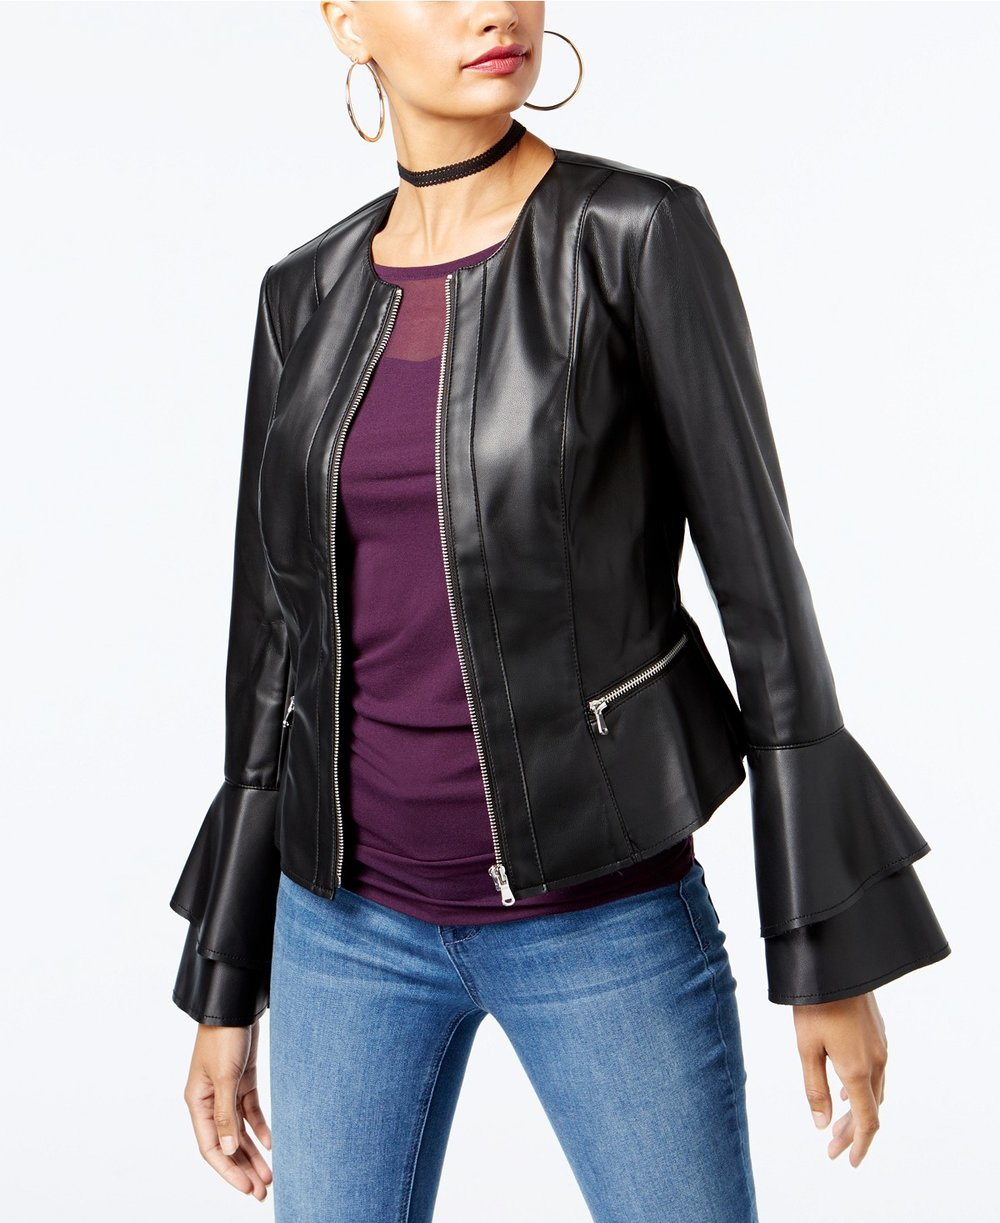 INC International Concepts  Petite Ruffle-Sleeve Faux-Leather Jacket. Macy's. Was: $119. Now: $59.